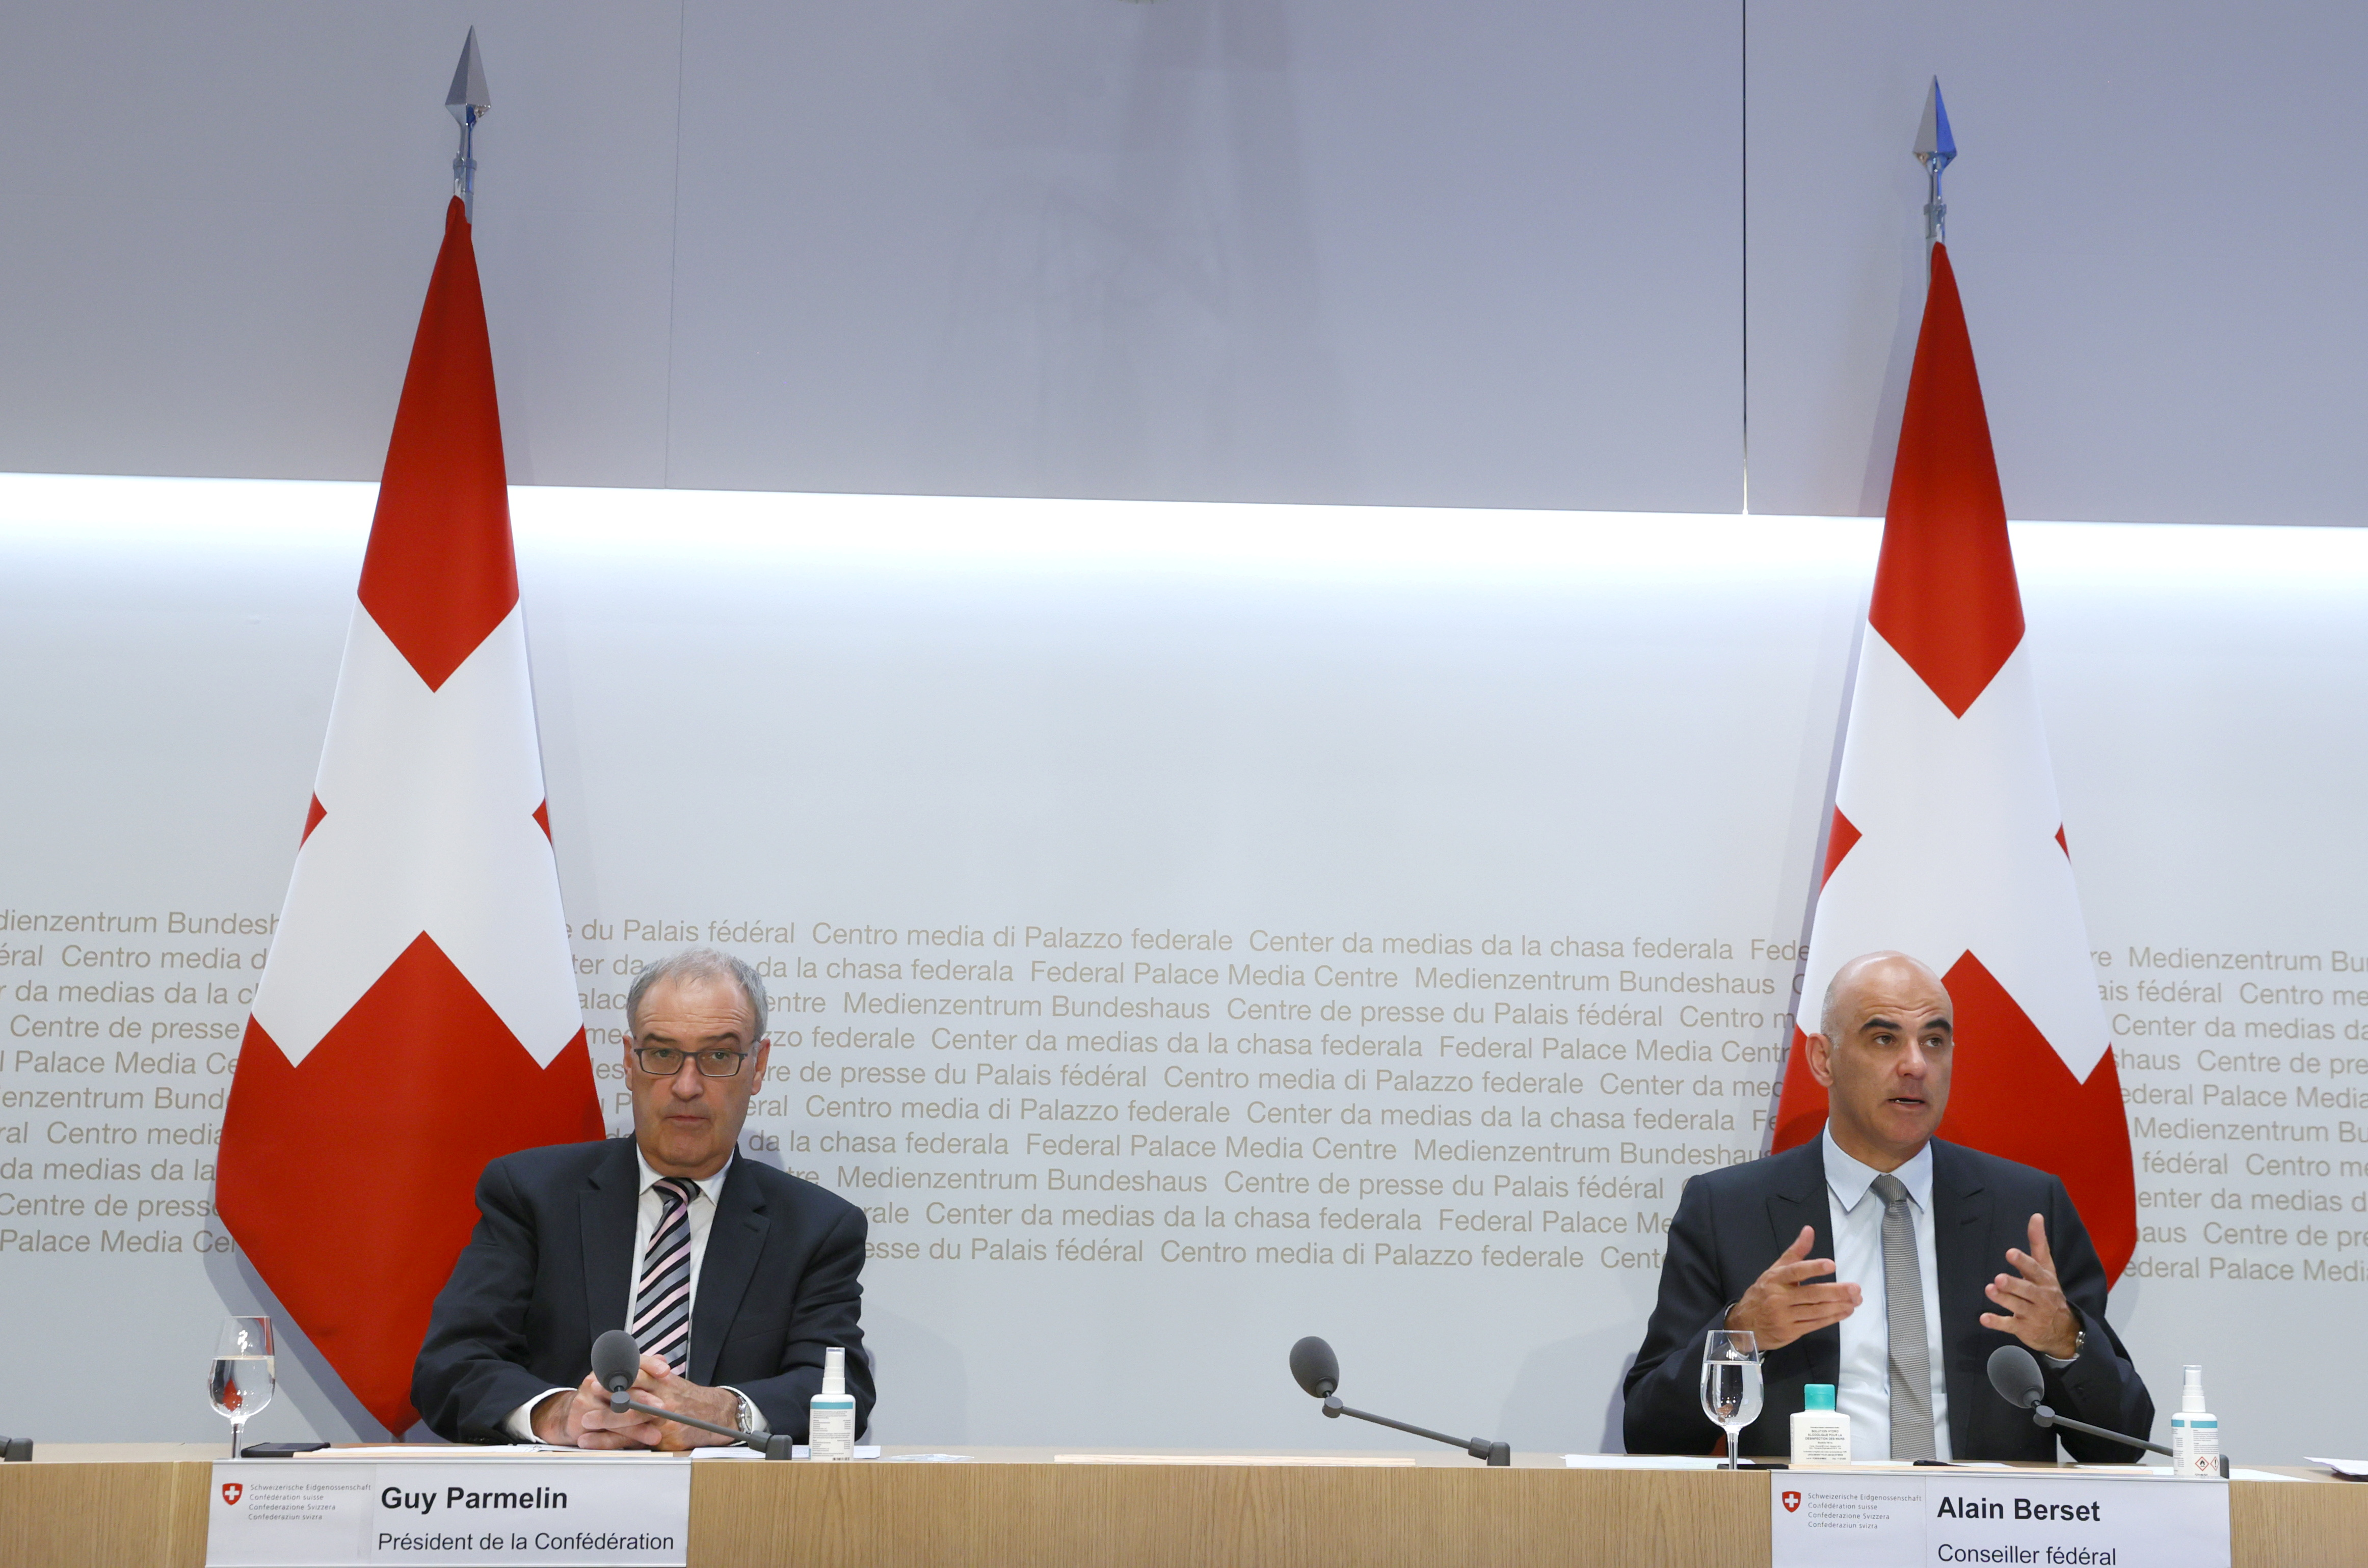 Swiss Interior and Health Minister Alain Berset (R) and Guy Parmelin President of the Swiss Confederation attend a news conference on the outbreak of the coronavirus disease (COVID-19) in Bern, Switzerland, September 8, 2021. REUTERS/Denis Balibouse